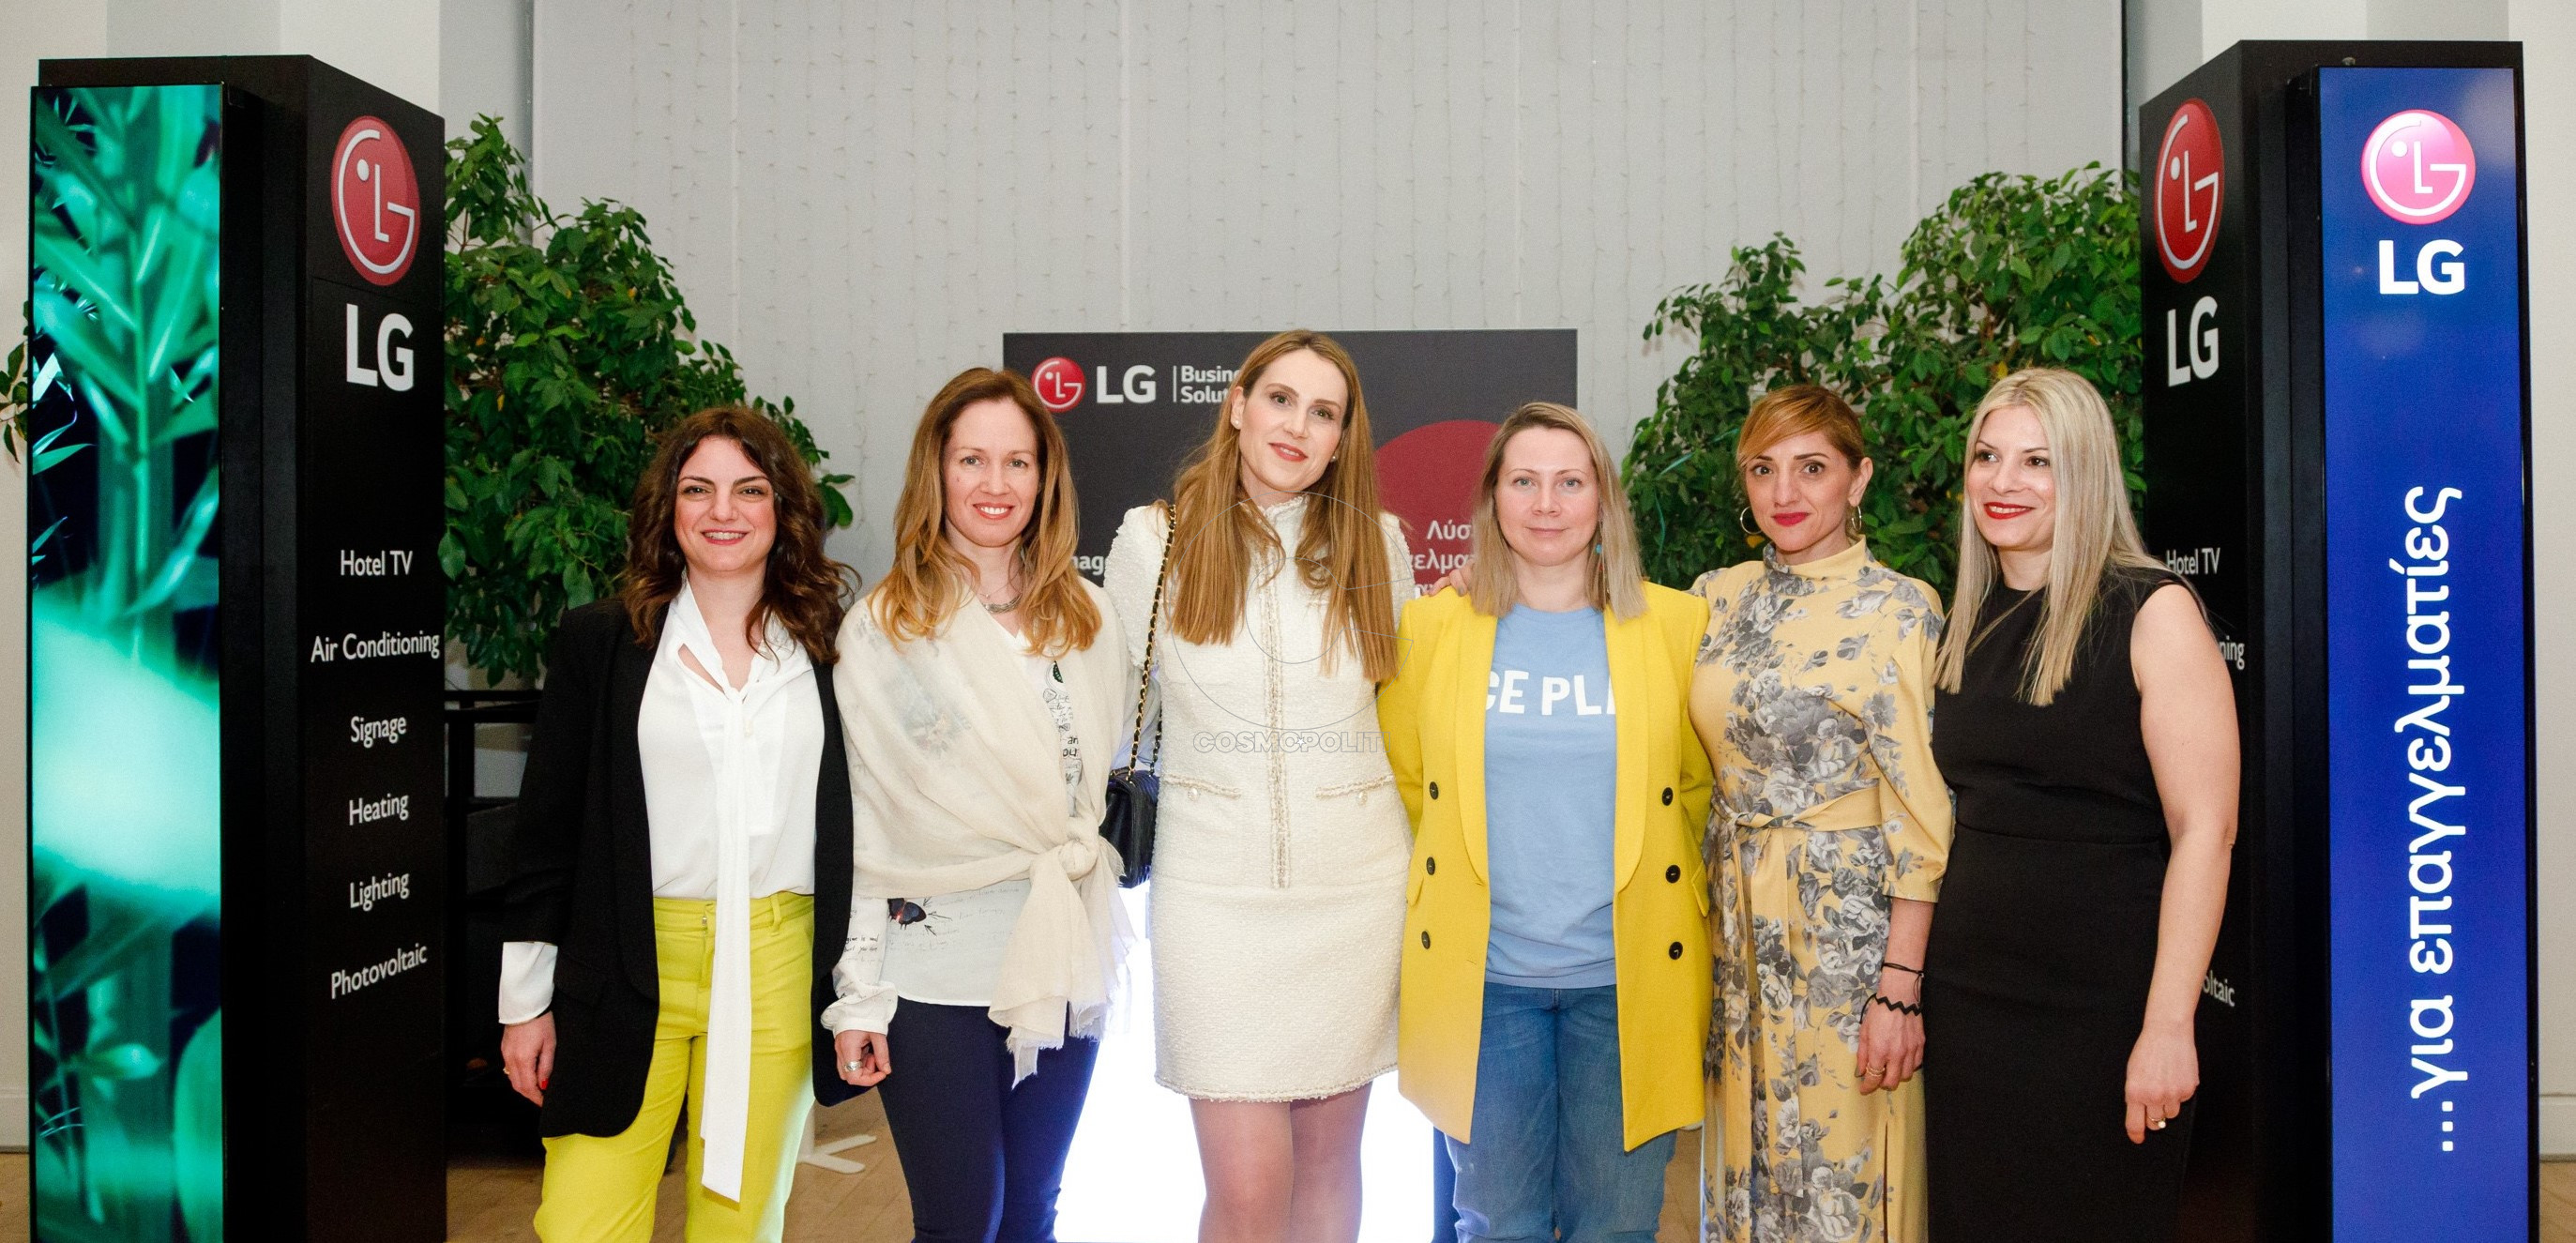 6011_LG_at_Leaders_in_Fintech_event